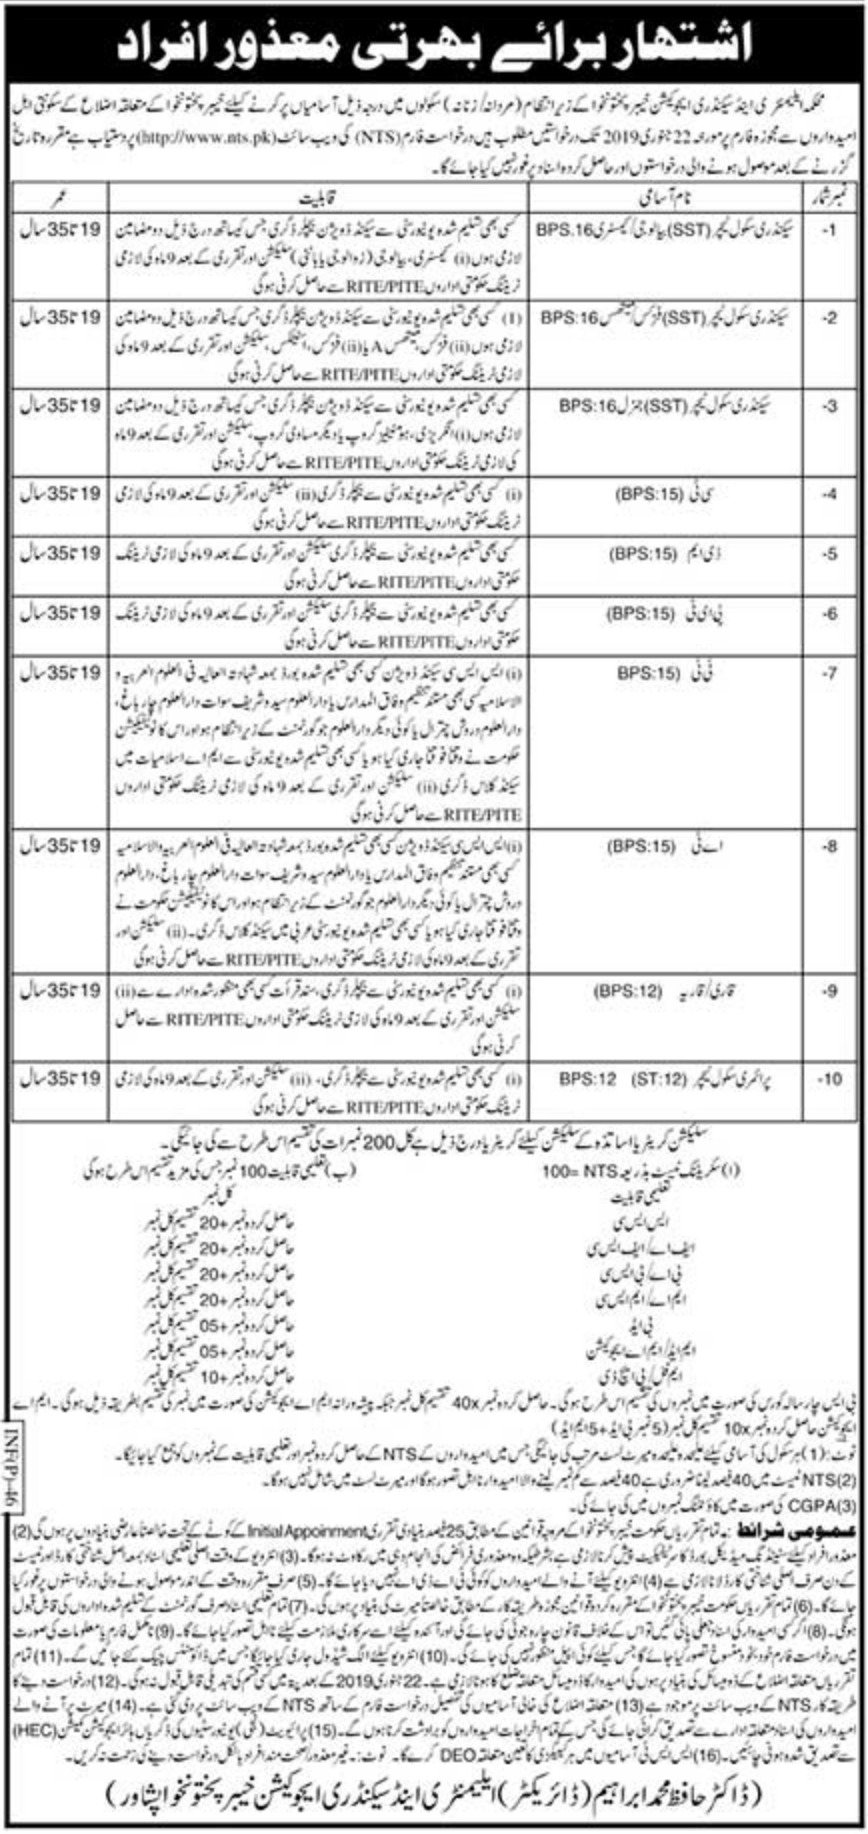 ESED Peshawar KPK Jobs 2019 Disabled Quota